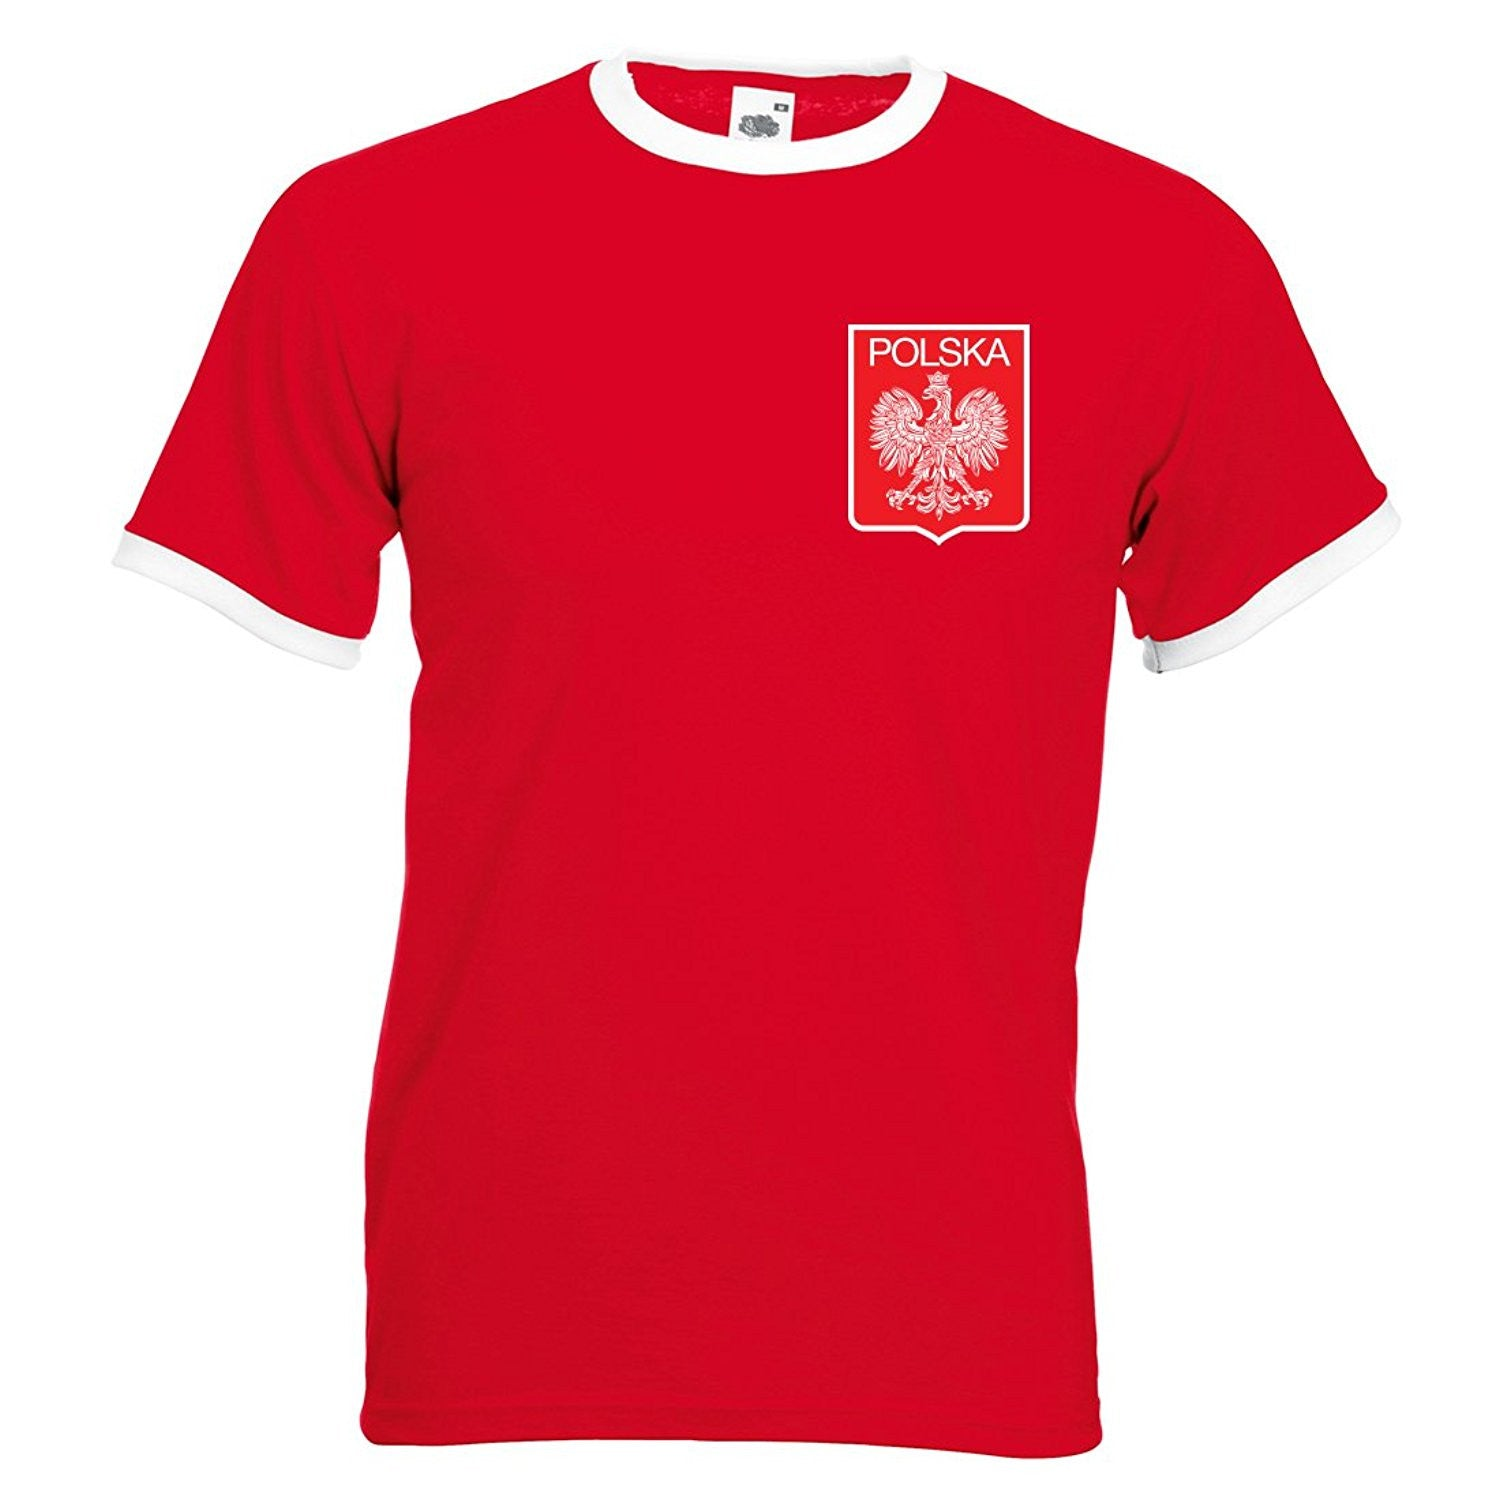 6a43cc7d4 Adults Poland Polska Embroidered Retro Football T-Shirt with Free Pers –  Print Me A Shirt